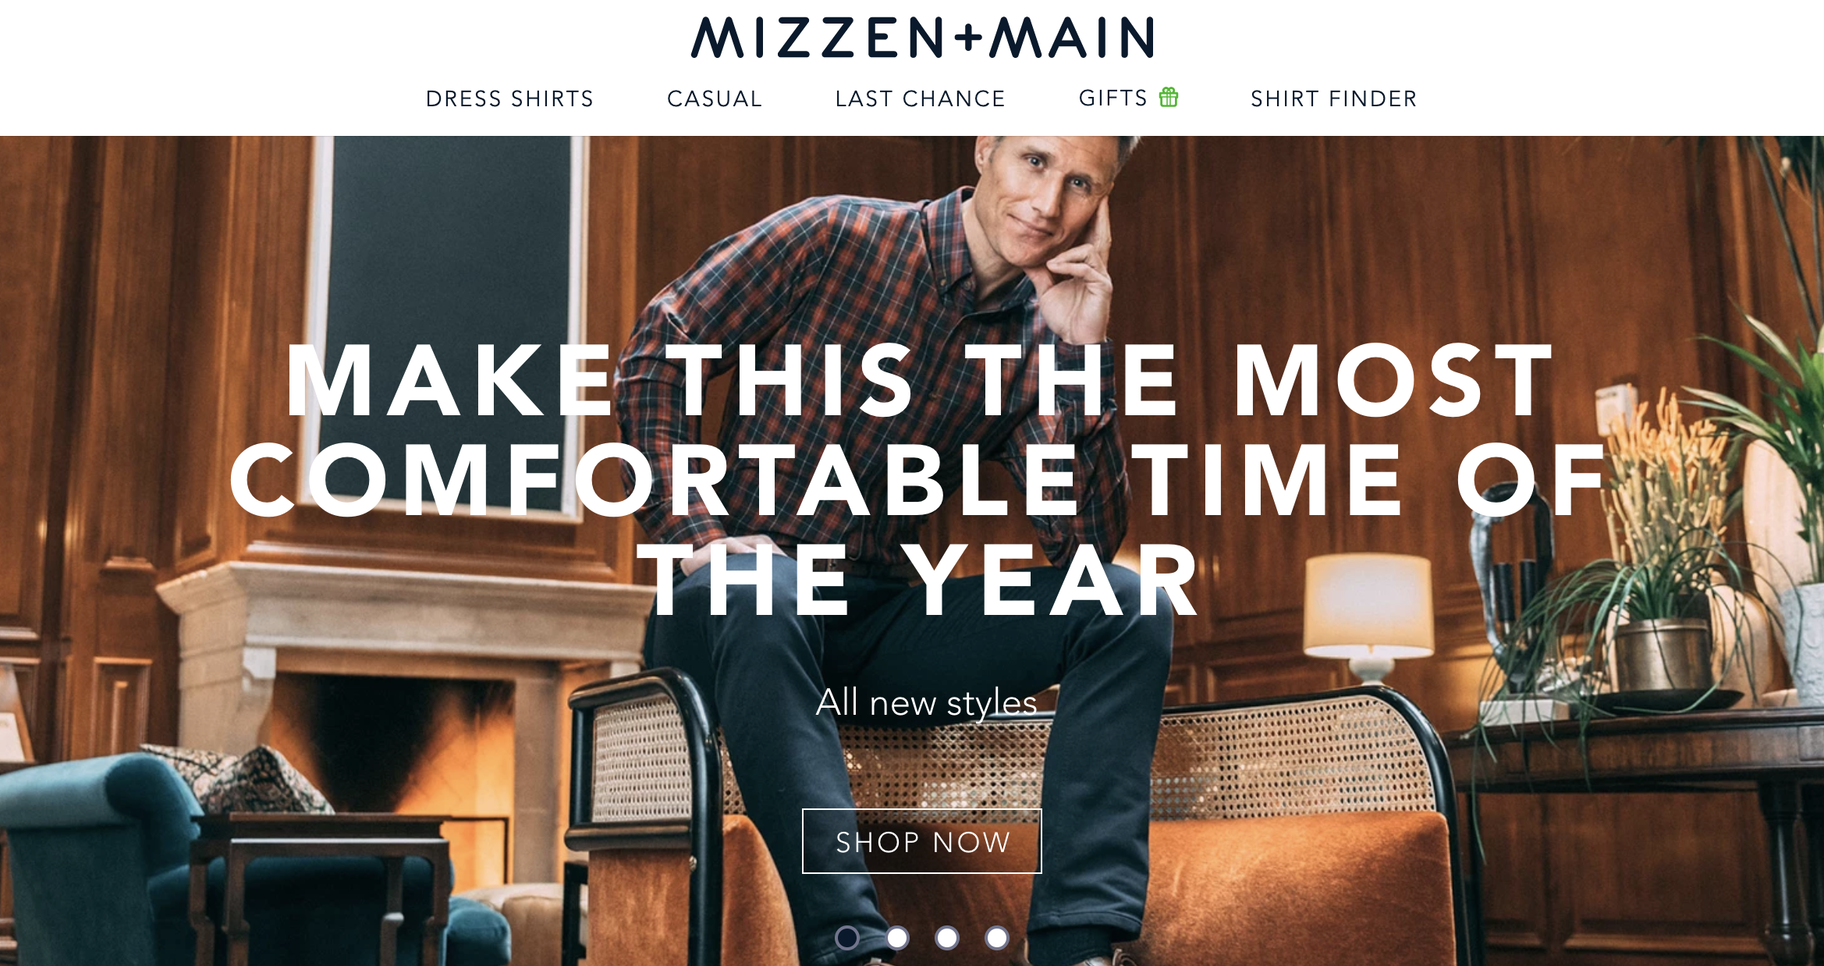 mizzen and main